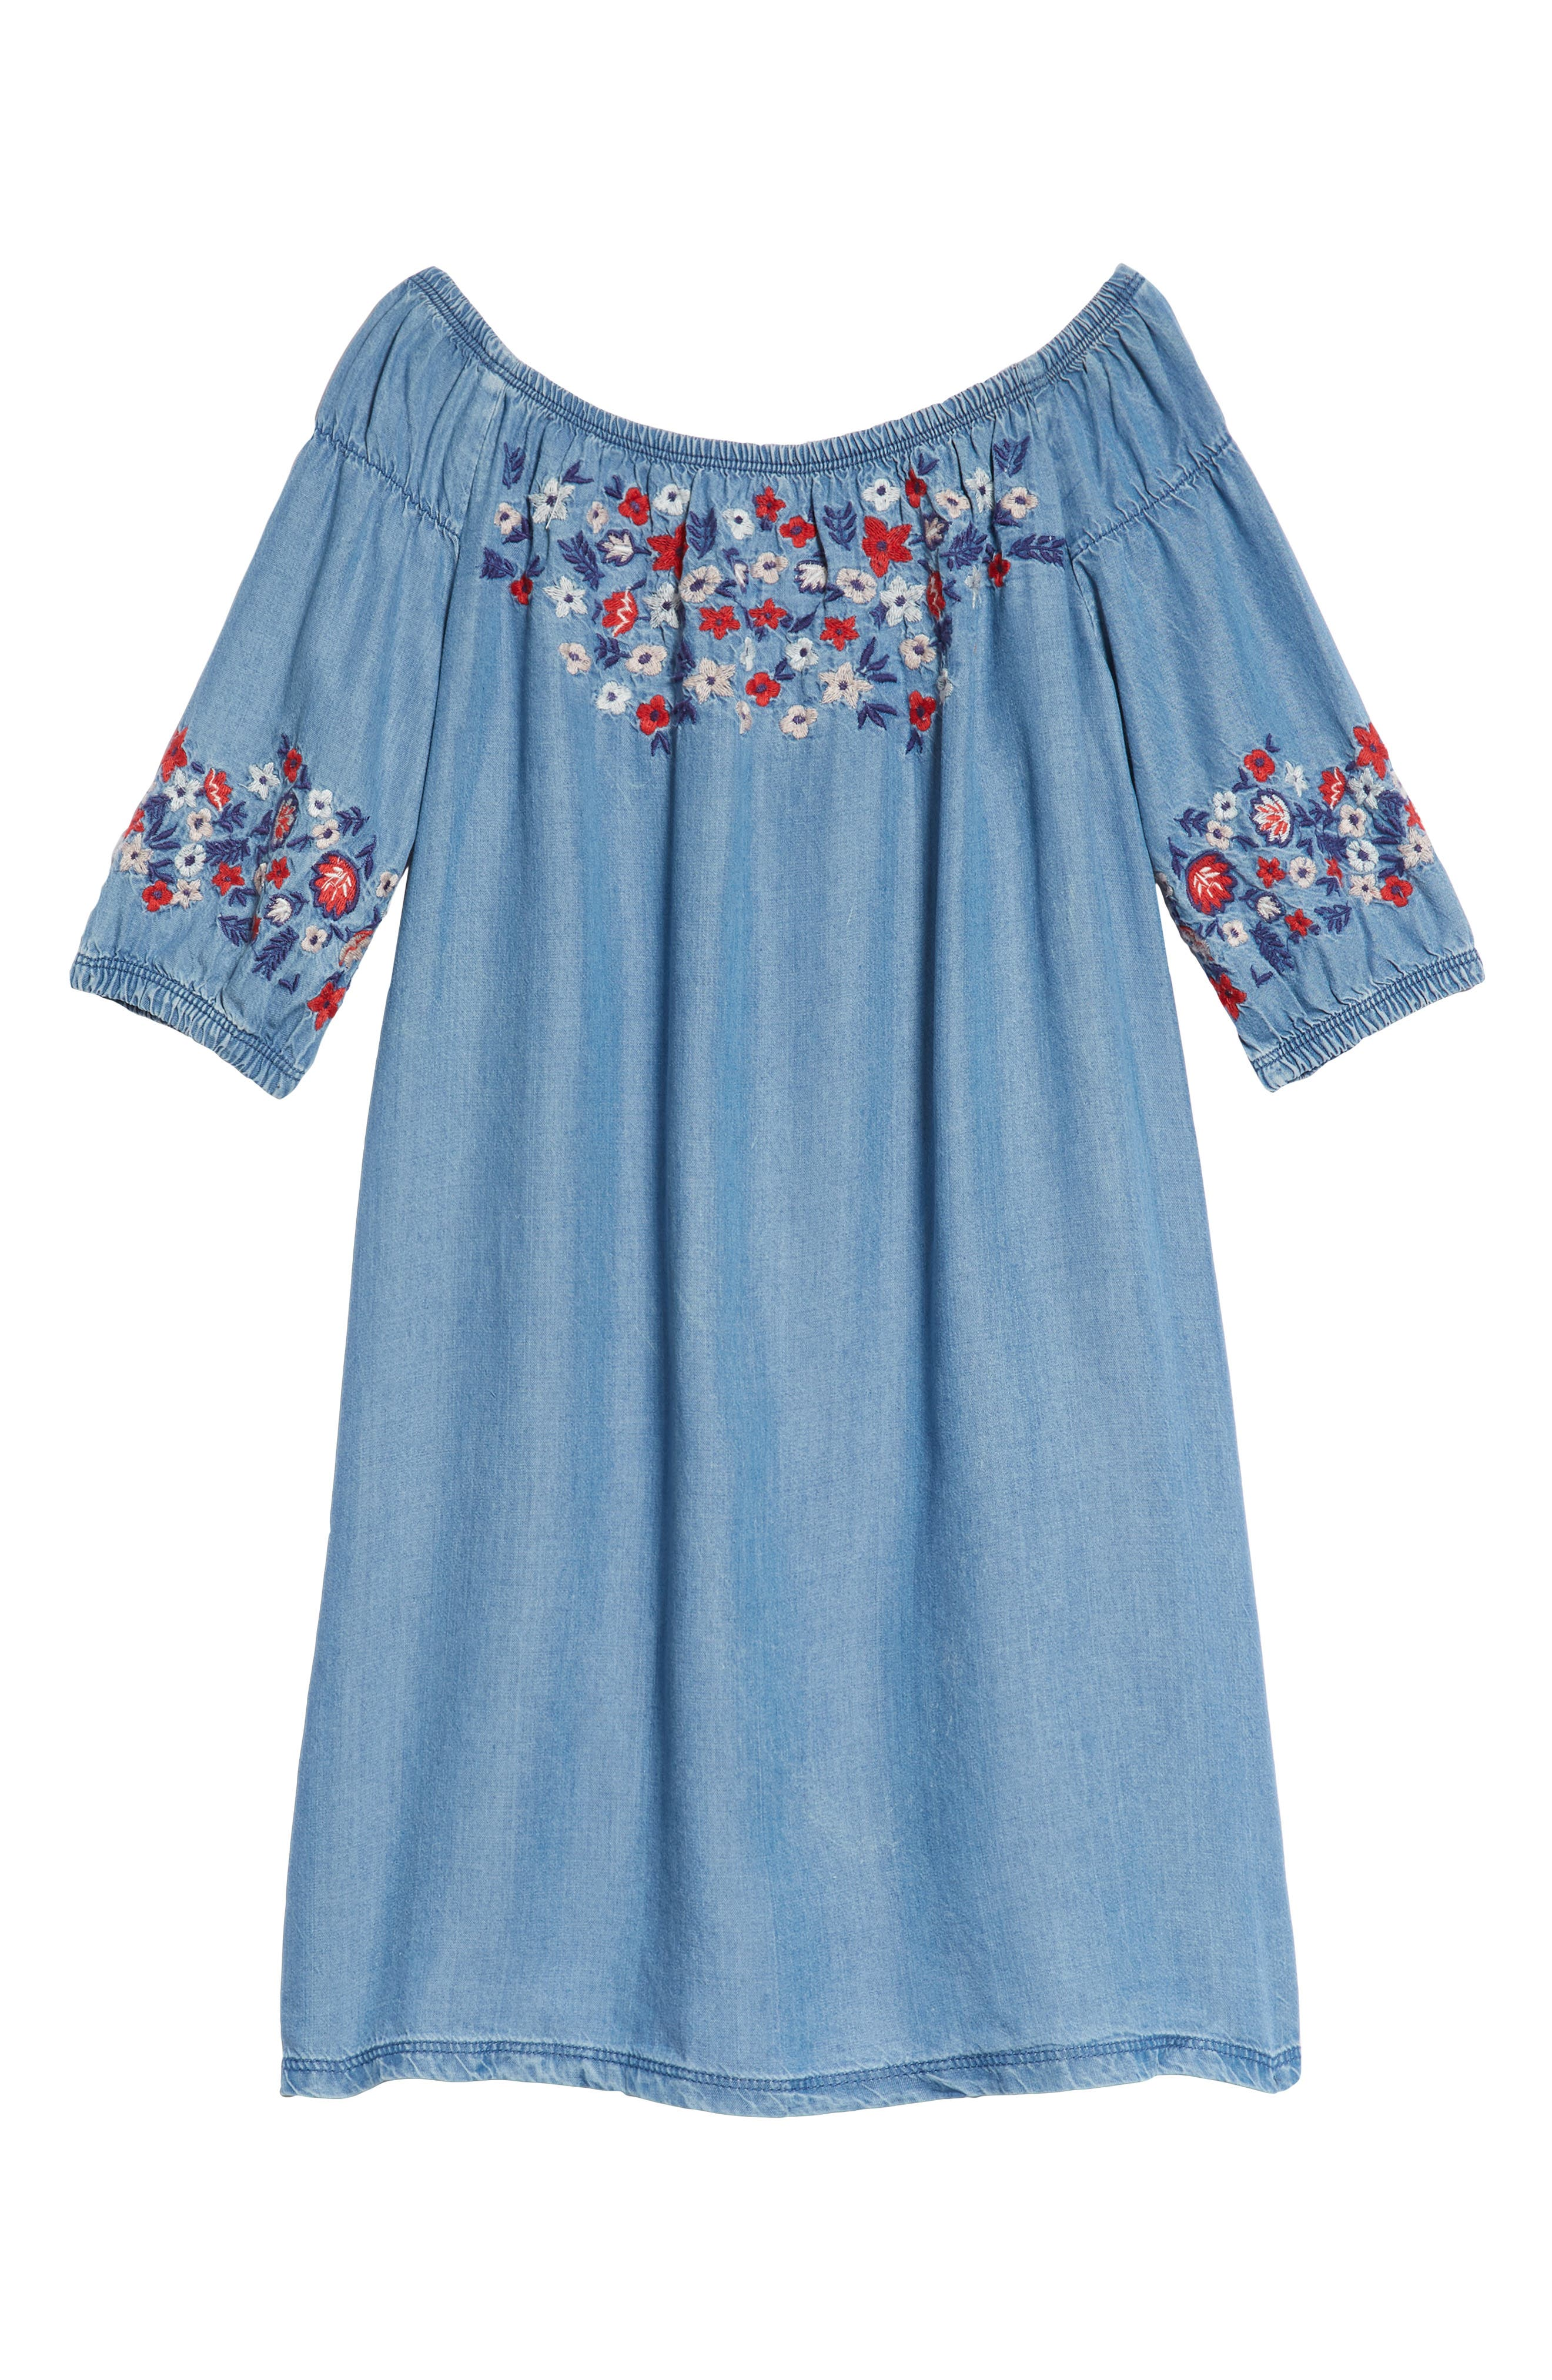 Flower Embroidered Off-the-Shoulder Dress,                             Main thumbnail 1, color,                             Blue River Wash